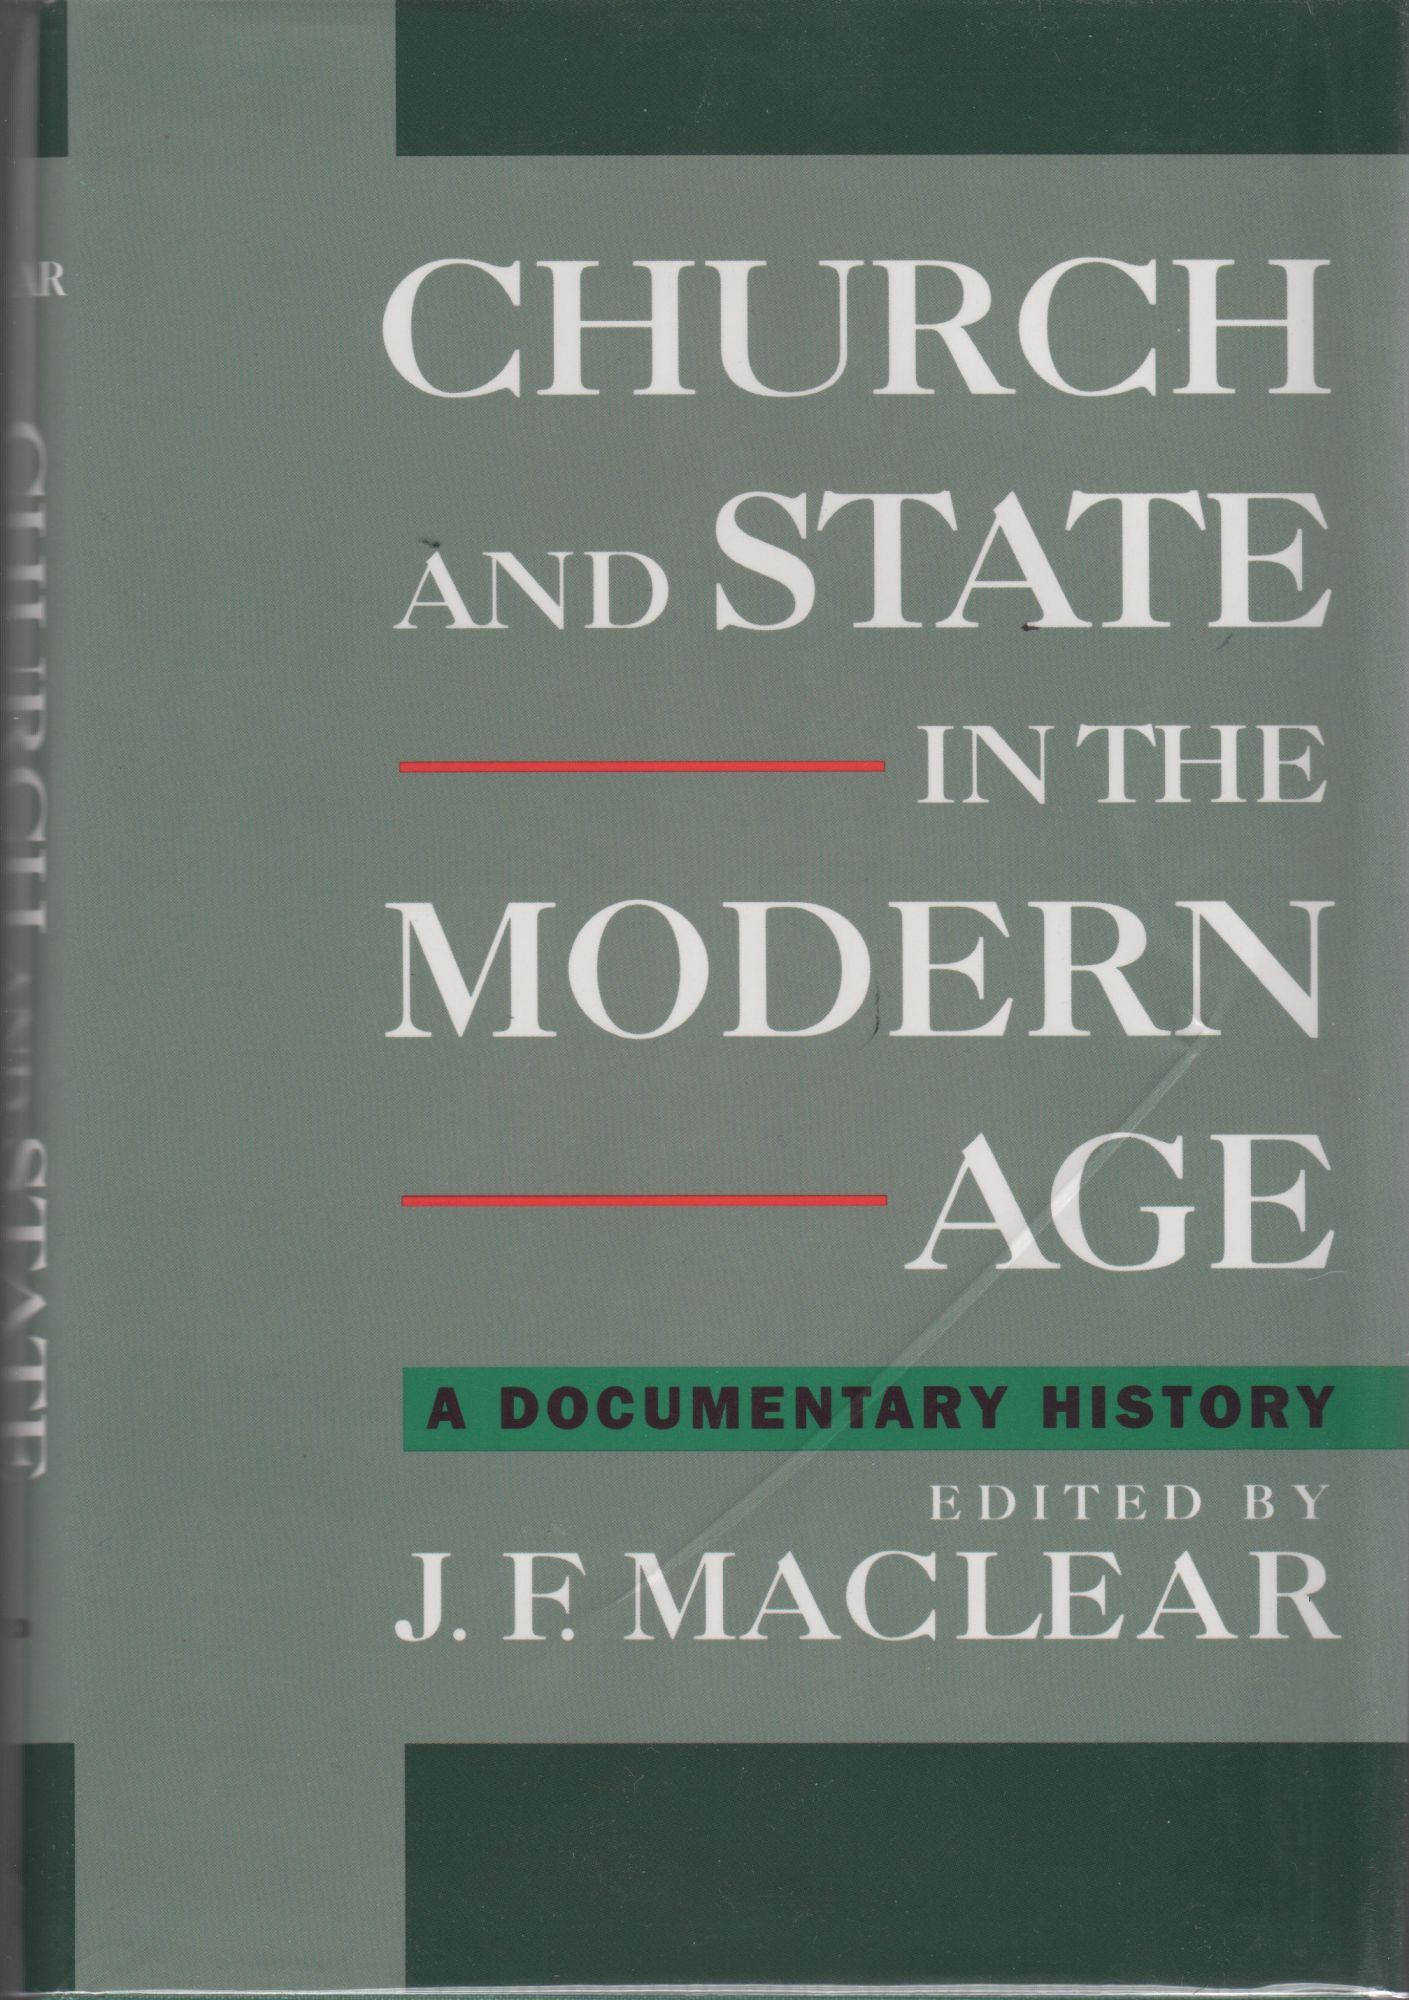 CHURCH AND STATE IN THE MODERN AGE: A DOCUMENTARY HISTORY. J. F. Maclear.